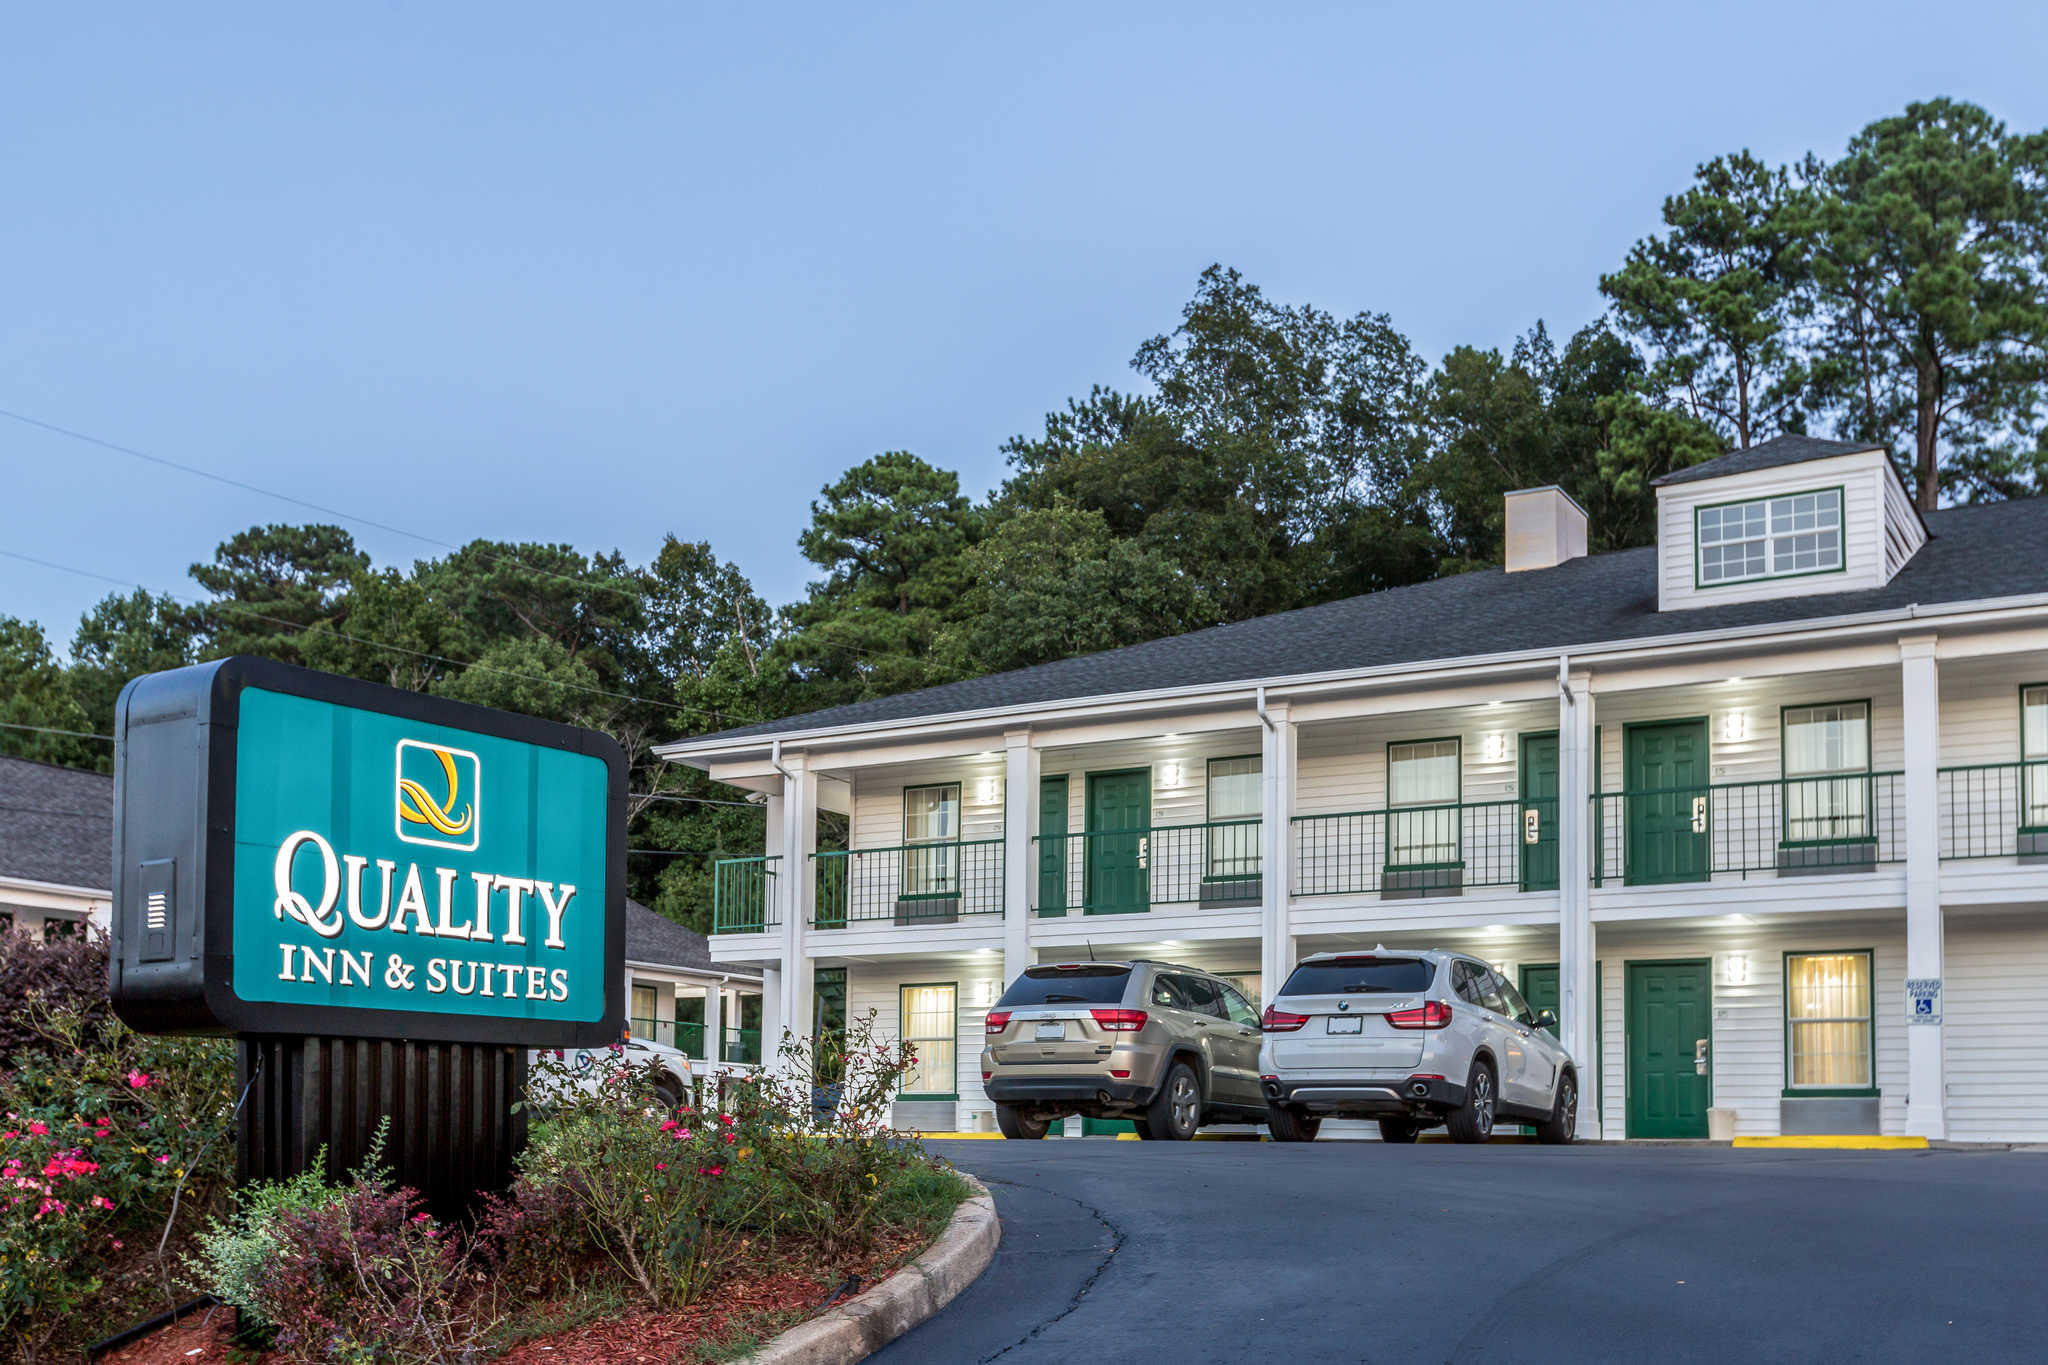 Quality Inn & Suites image 0